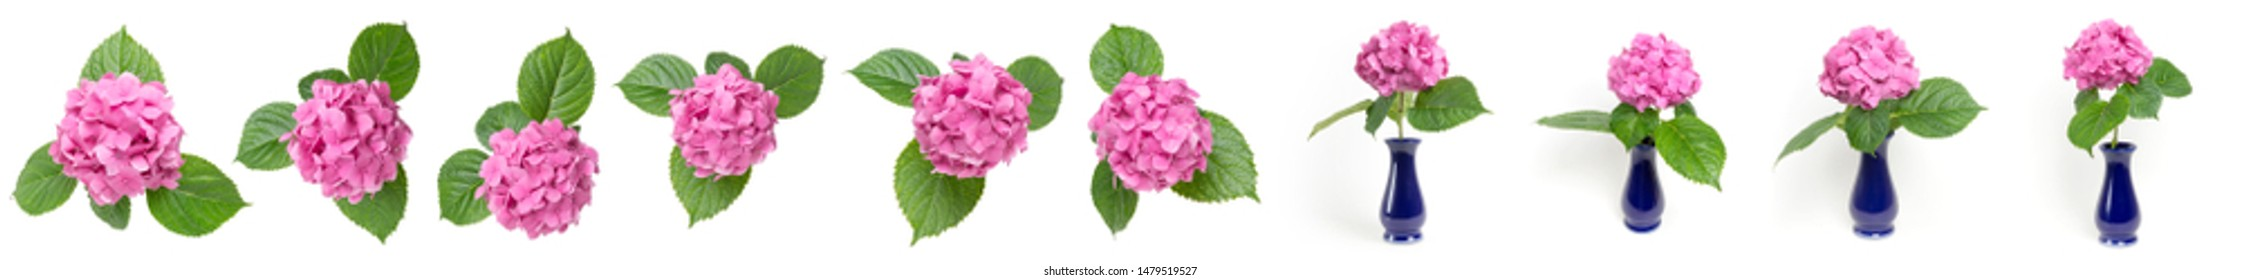 Pink Hydrangea flowers in a vase isolated on white background, Blooming branch of Hortensia pink flower head, Bouquet of pink hydrangea flower garden bush with leaves